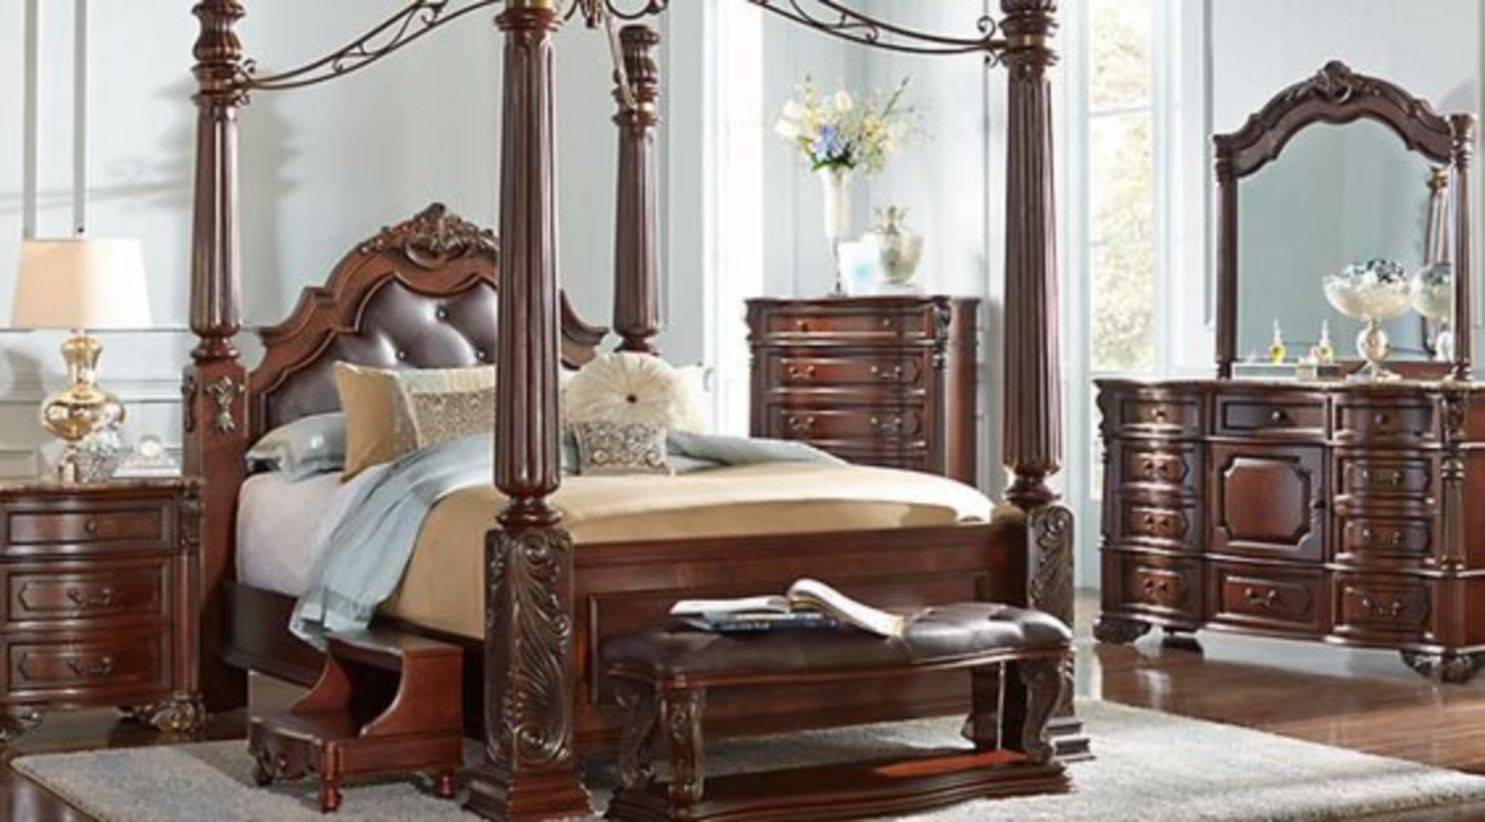 Luxury king size bed with wooden frame